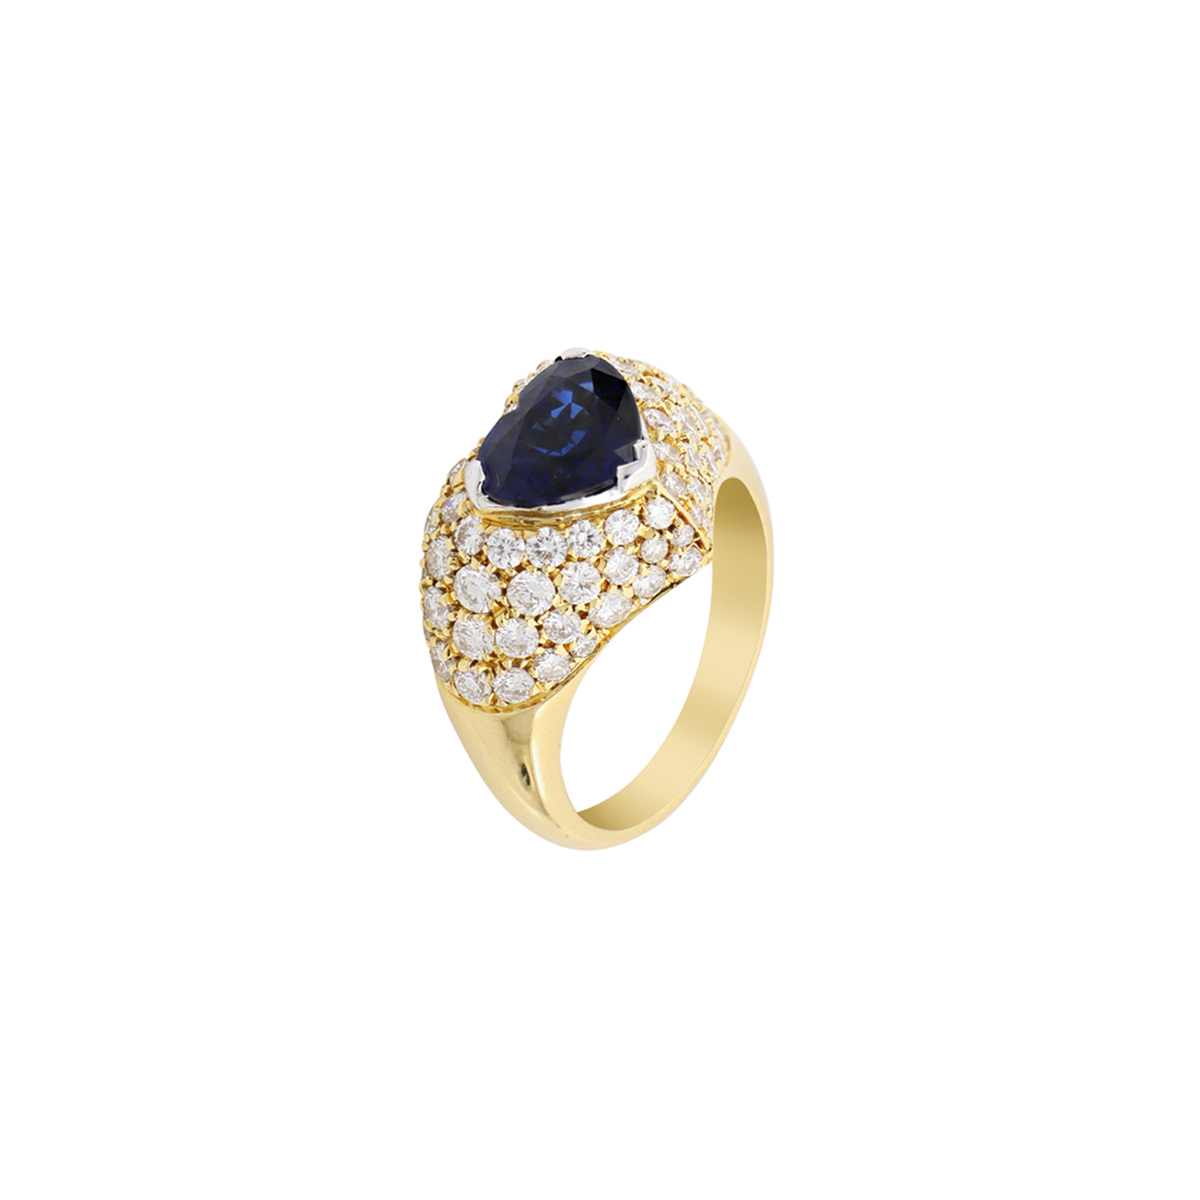 Heart-Cut Sapphire Ring with Diamonds